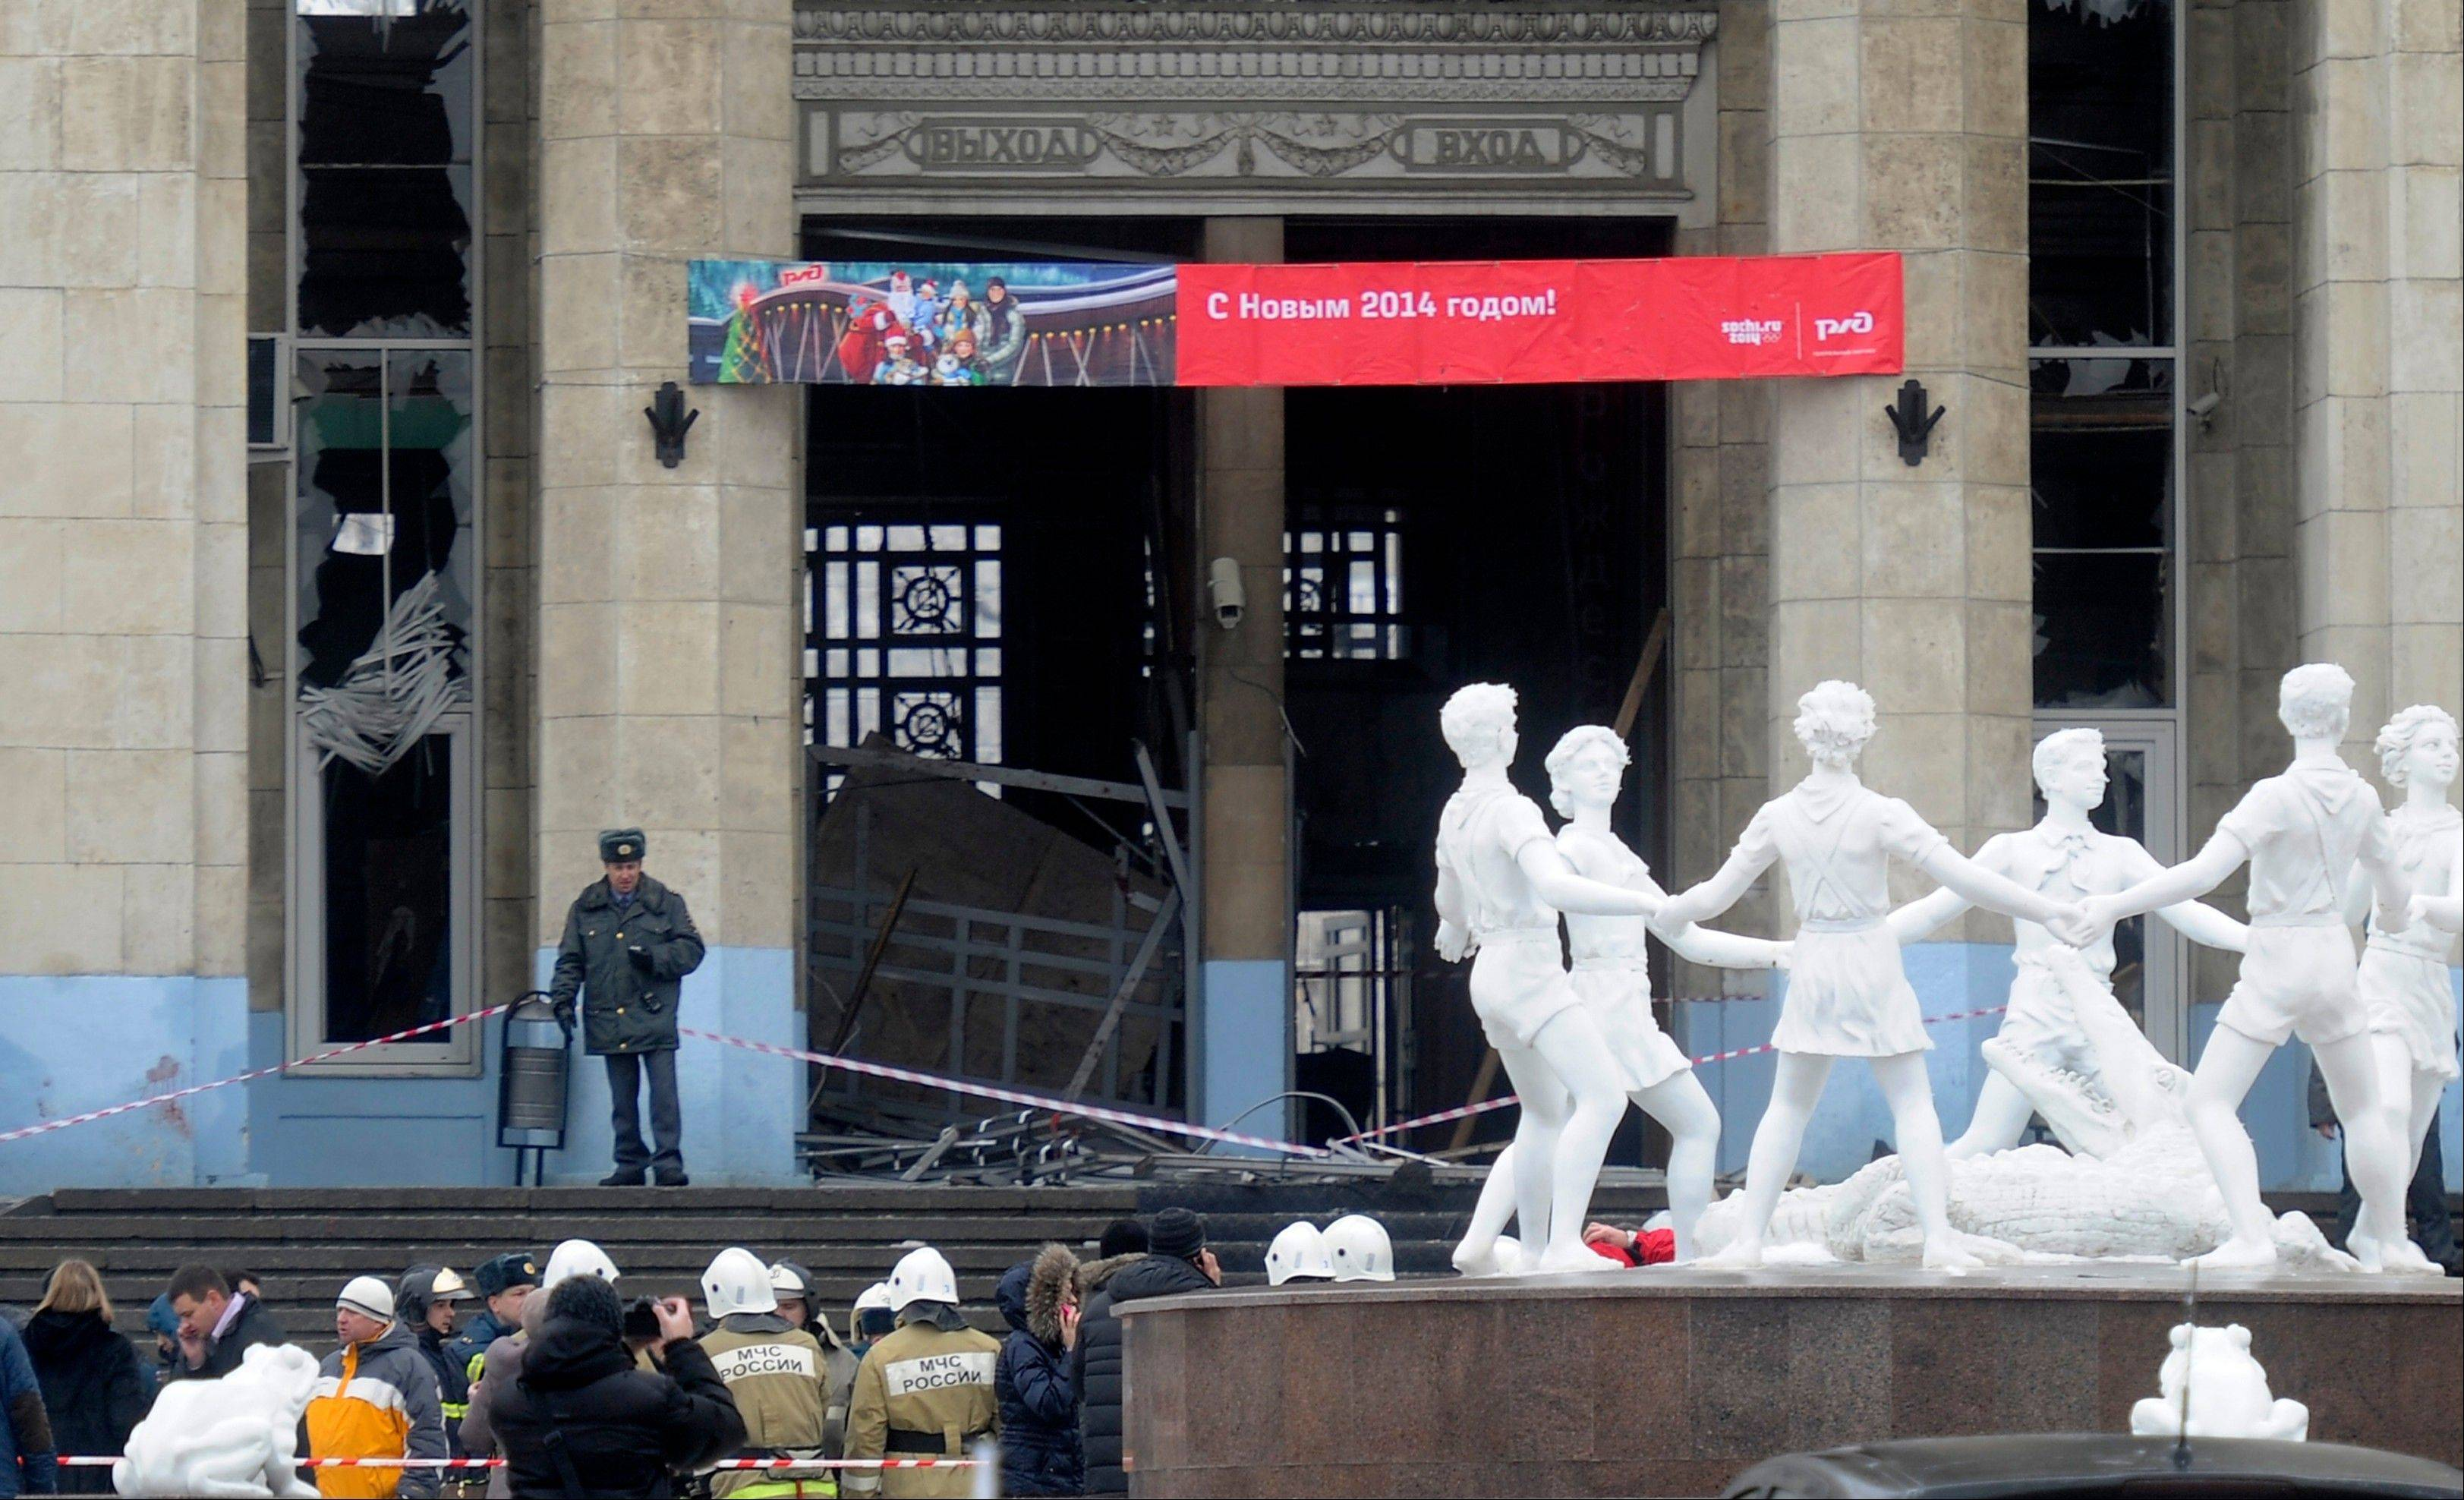 A police officer guards a main entrance to the Volgograd railway station hit by an explosion, in Volgograd, Russia, Dec. 29, 2013. More then a dozen people were killed and scores were wounded, heightening concern about terrorism ahead of February�s Olympics in the Black Sea resort of Sochi.